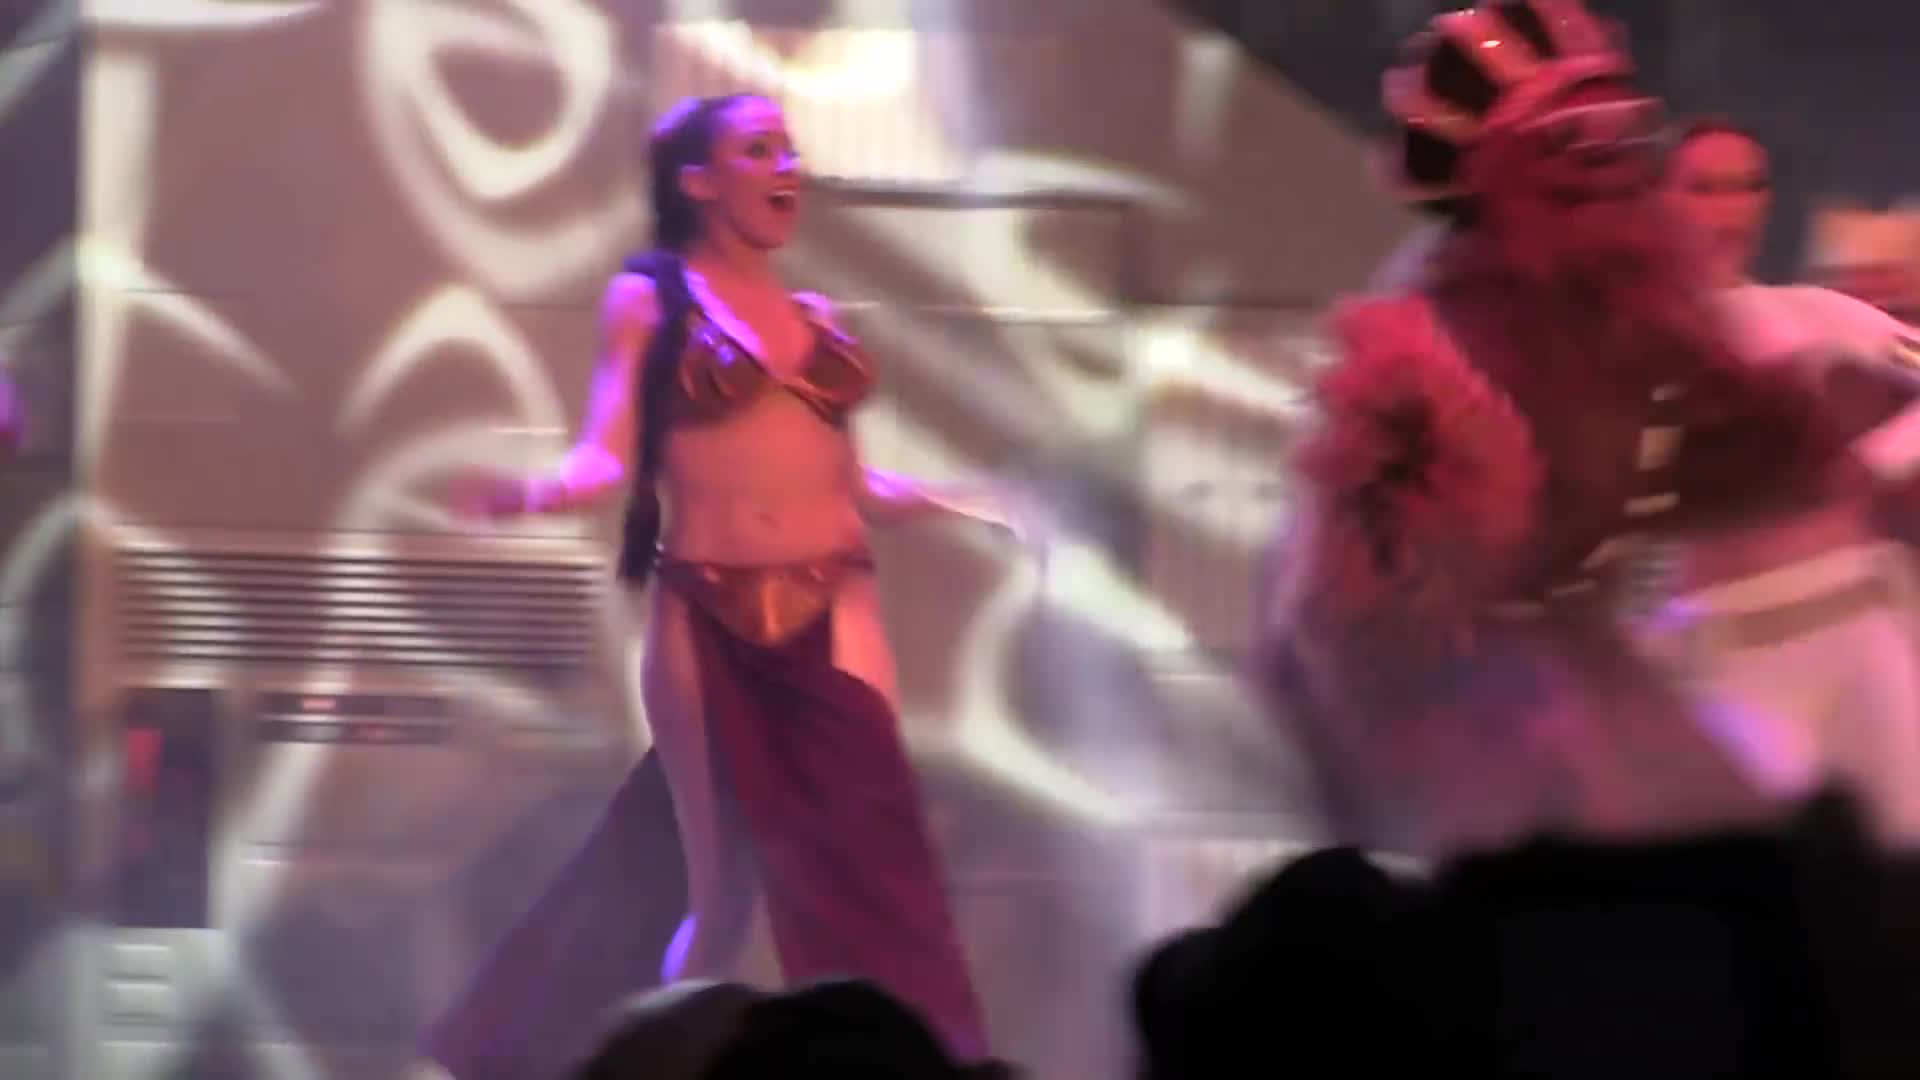 Bad, Full Dance-Off With the Star Wars Stars 2013 during Hyperspace Hoopla at Walt Disney World GIFs